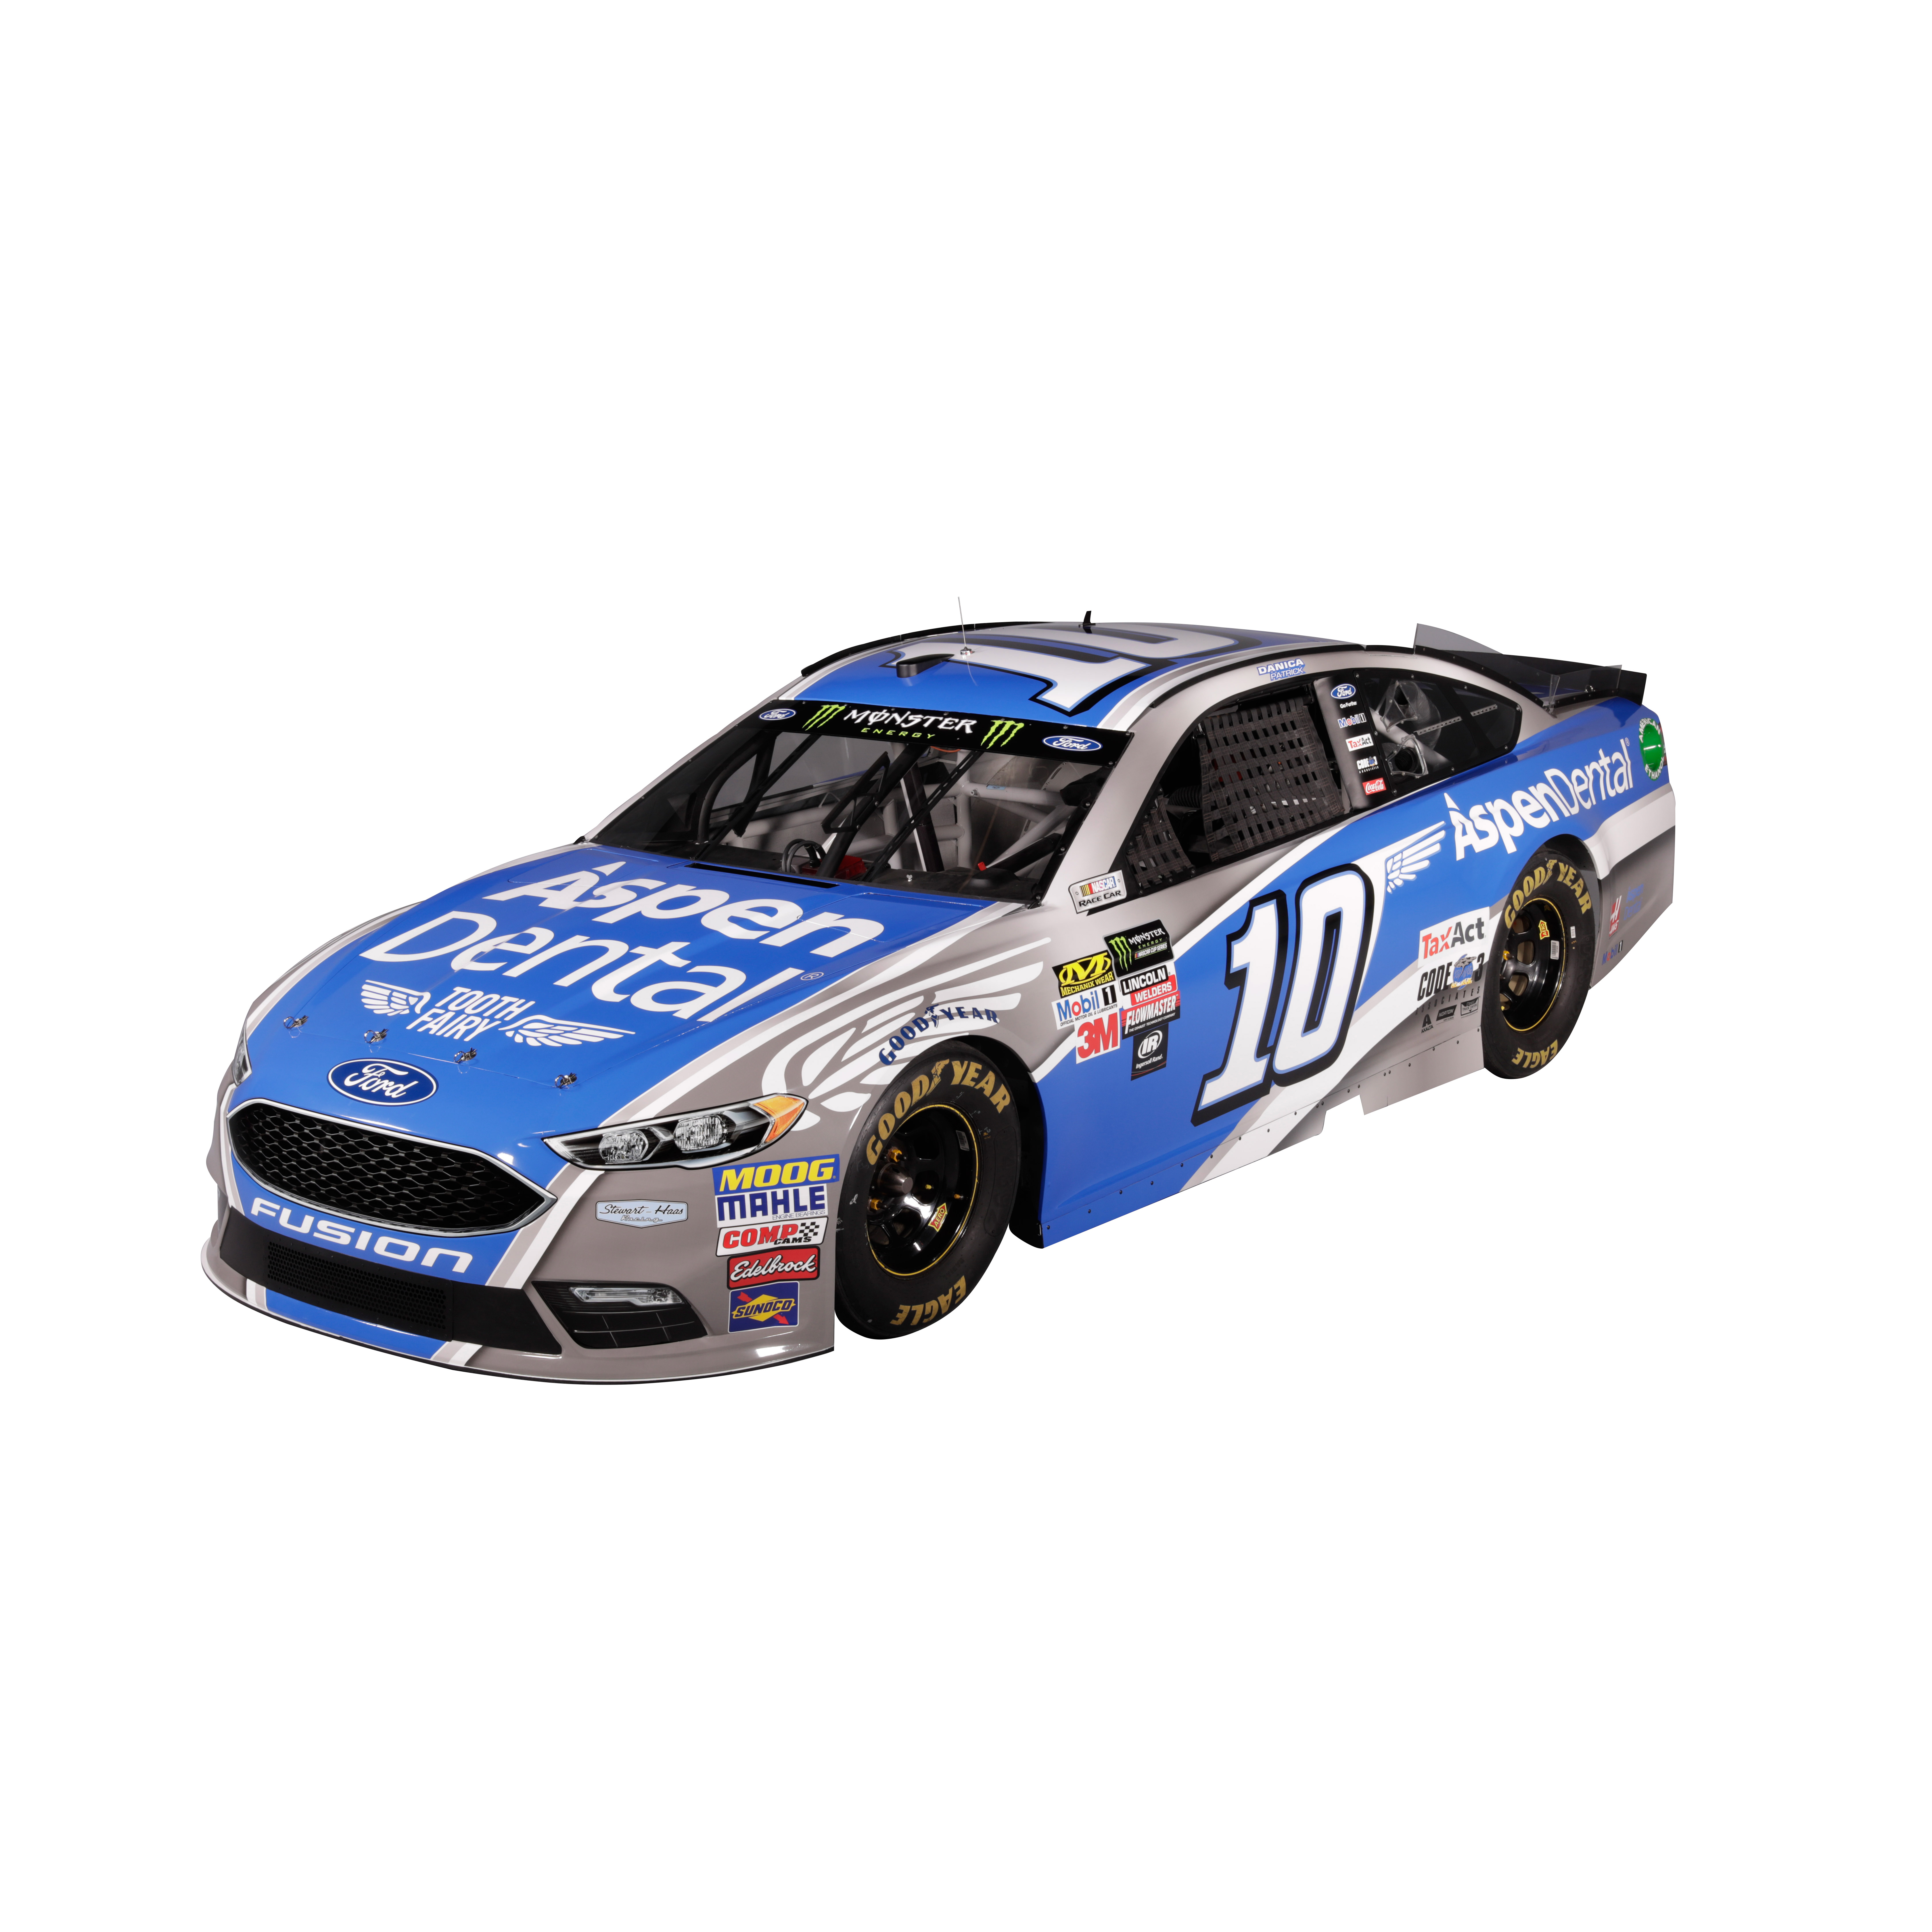 Danica Patrick Action Racing 2017 #10 Aspen Dental 1:24 Monster Energy Nascar Cup Series... by Lionel LLC